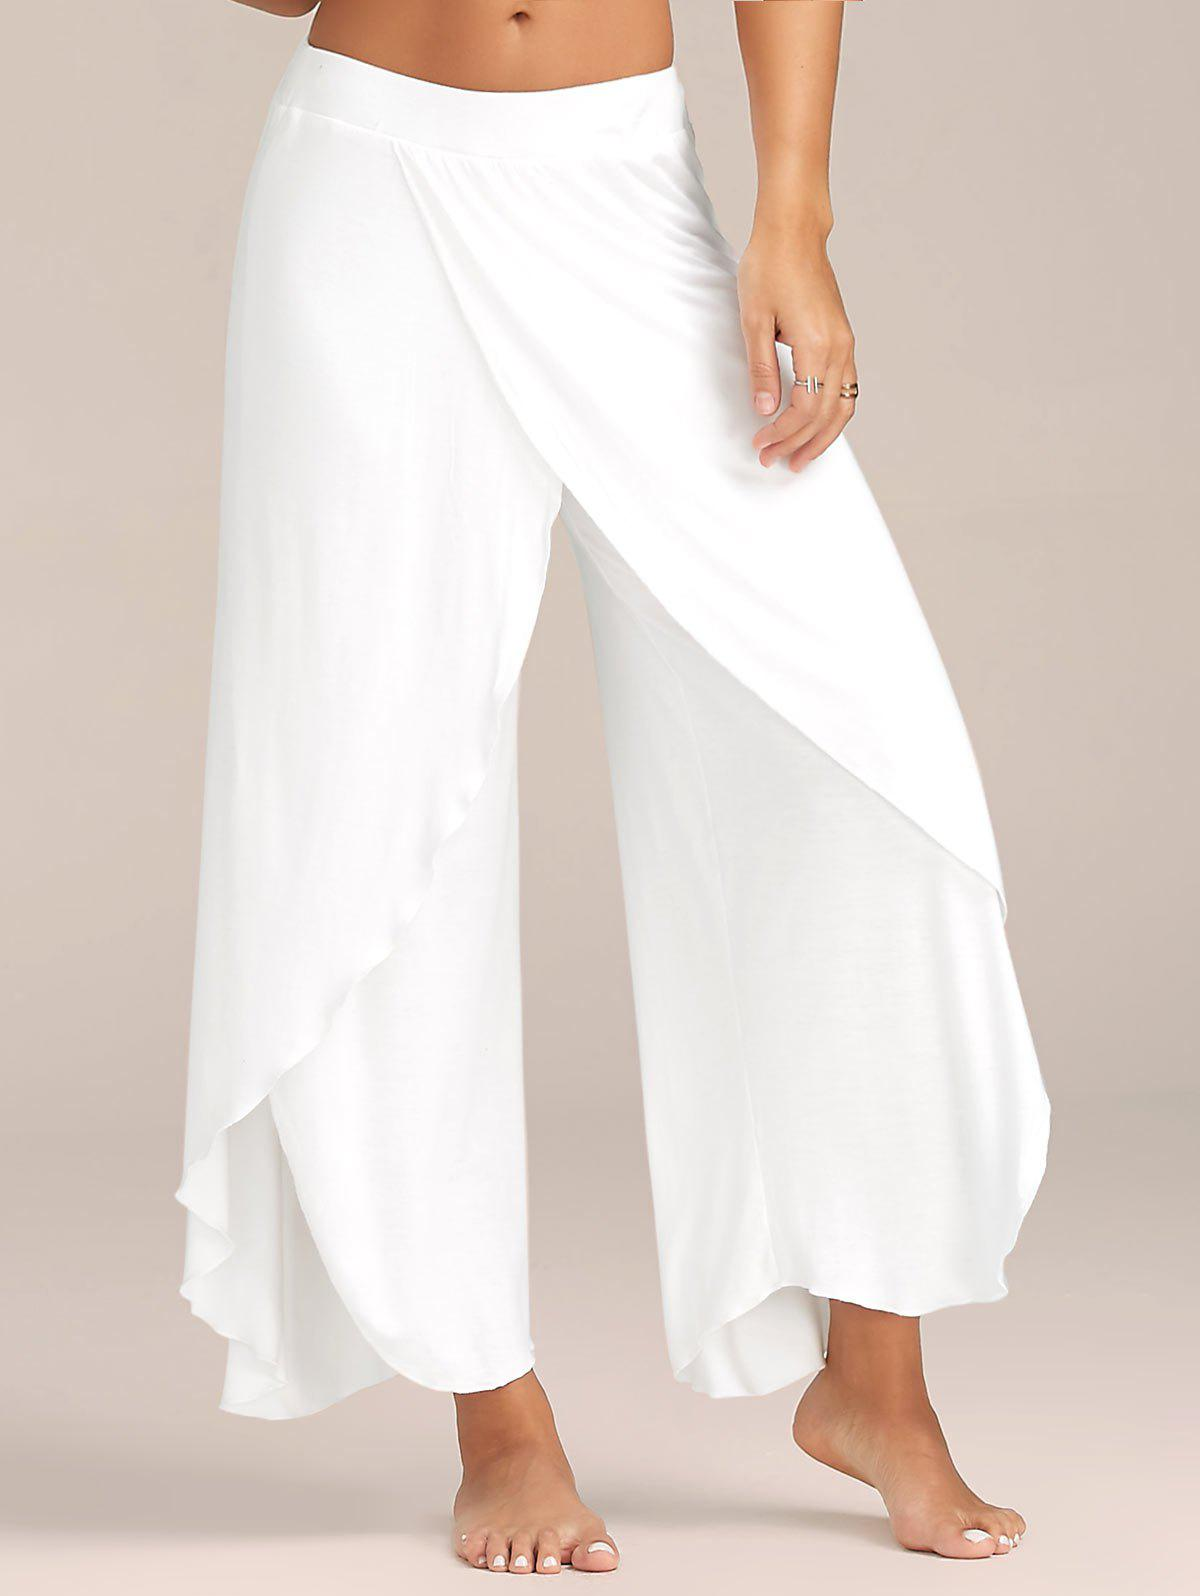 New Flowy Layered High Waisted Slit Palazzo Pants